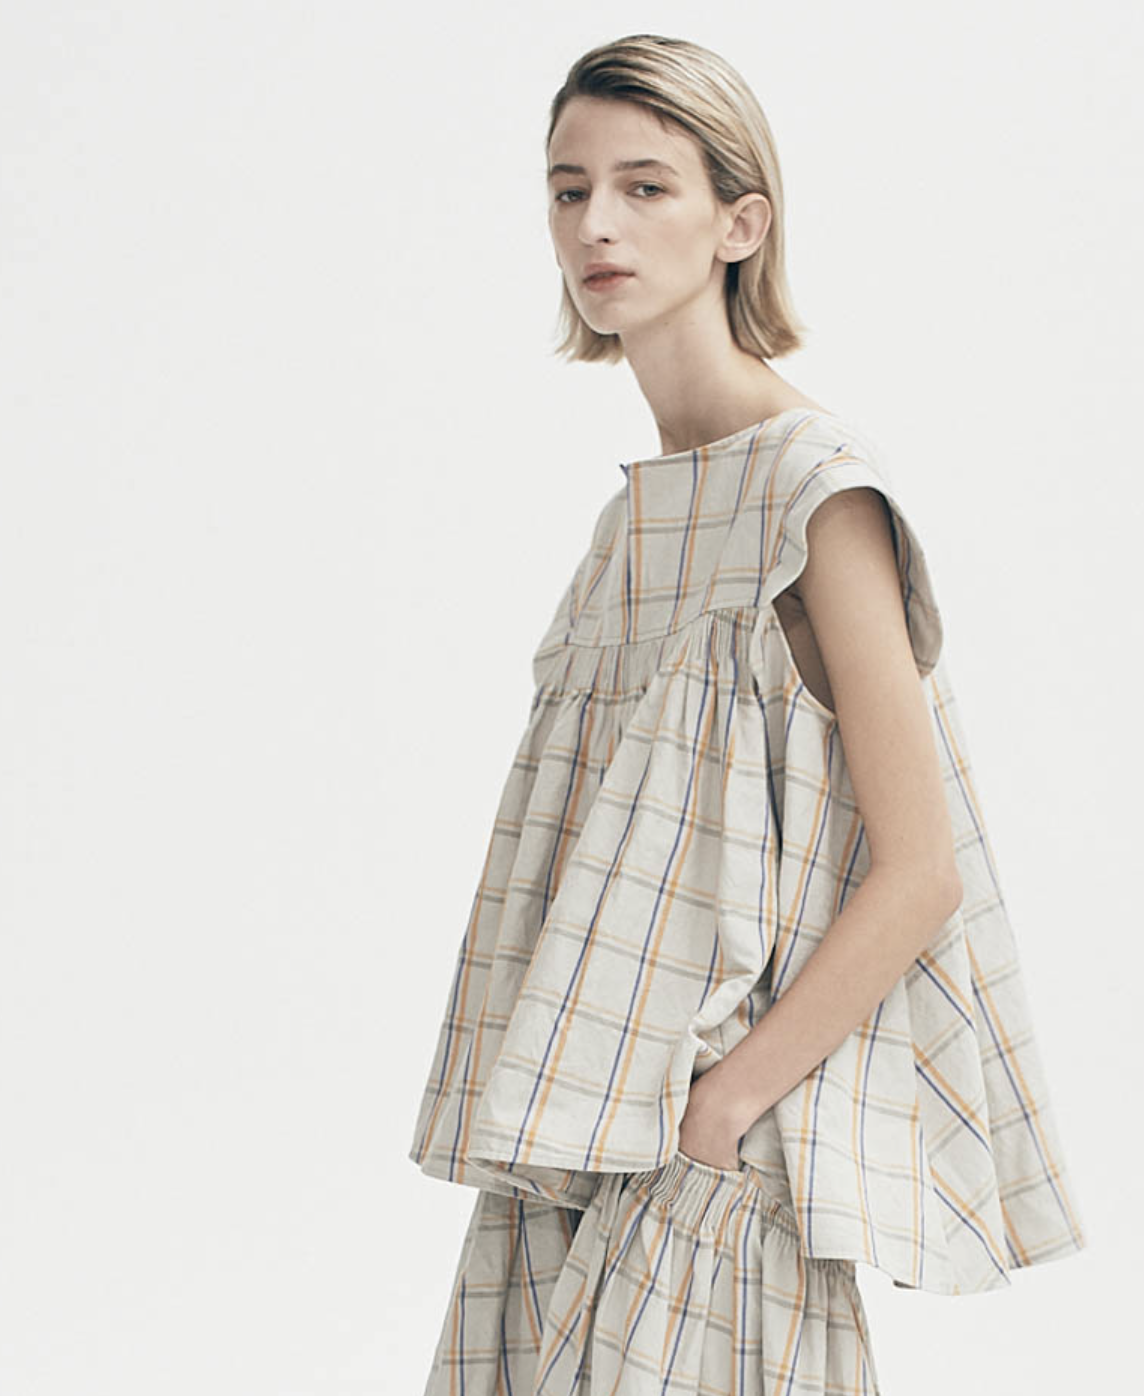 Fairfax Linen Check Sleeveless Top by Teija on curated-crowd.com